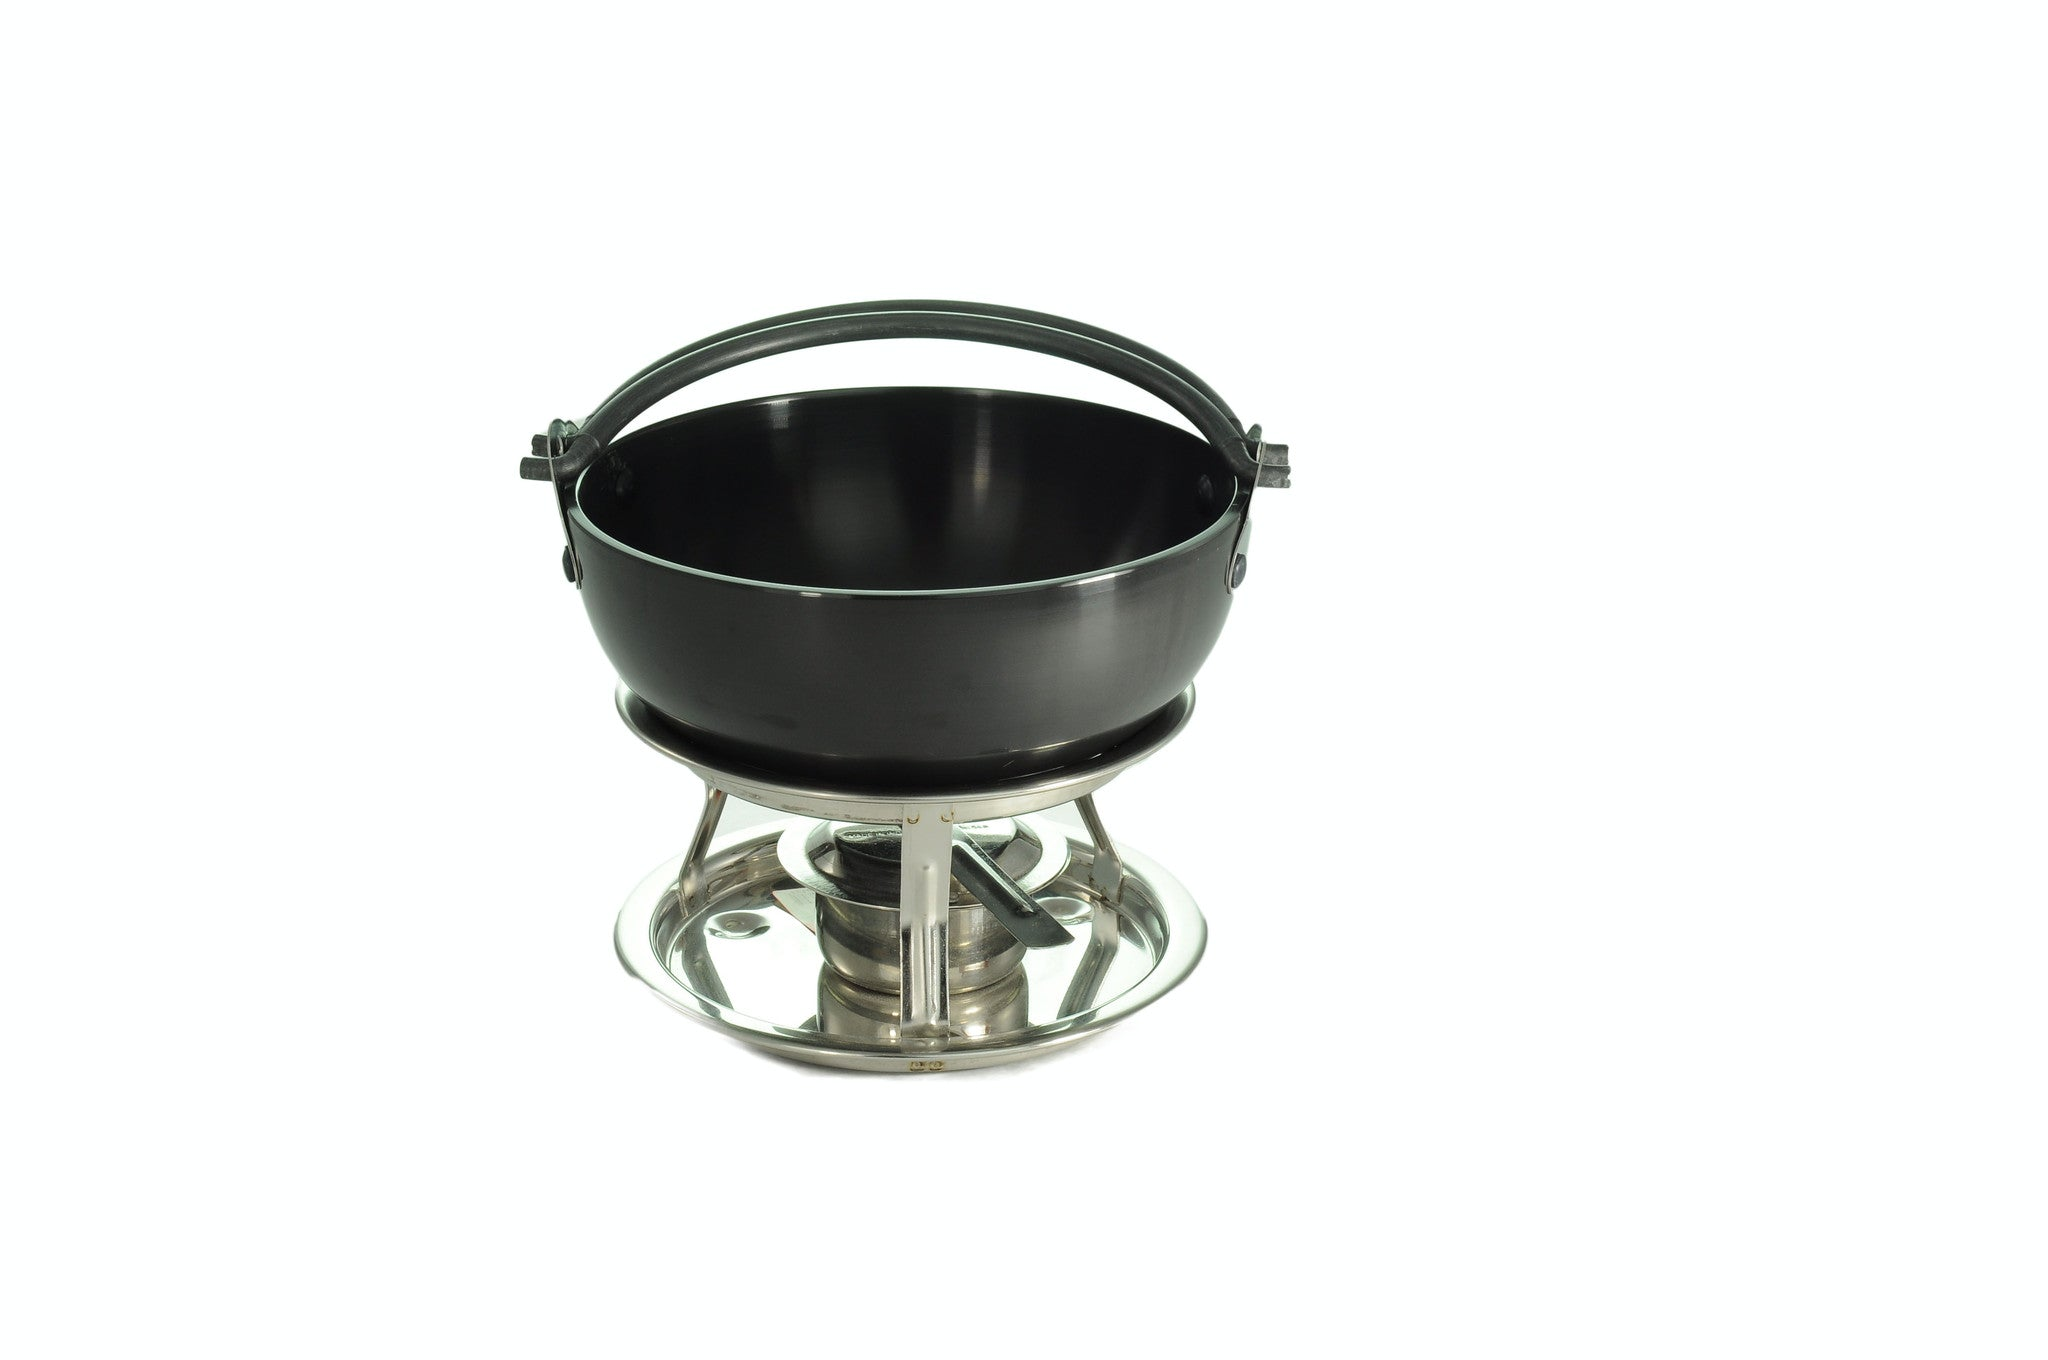 Aluminum Anodized Shabu Shabu Pot, Cookware - eKitchenary